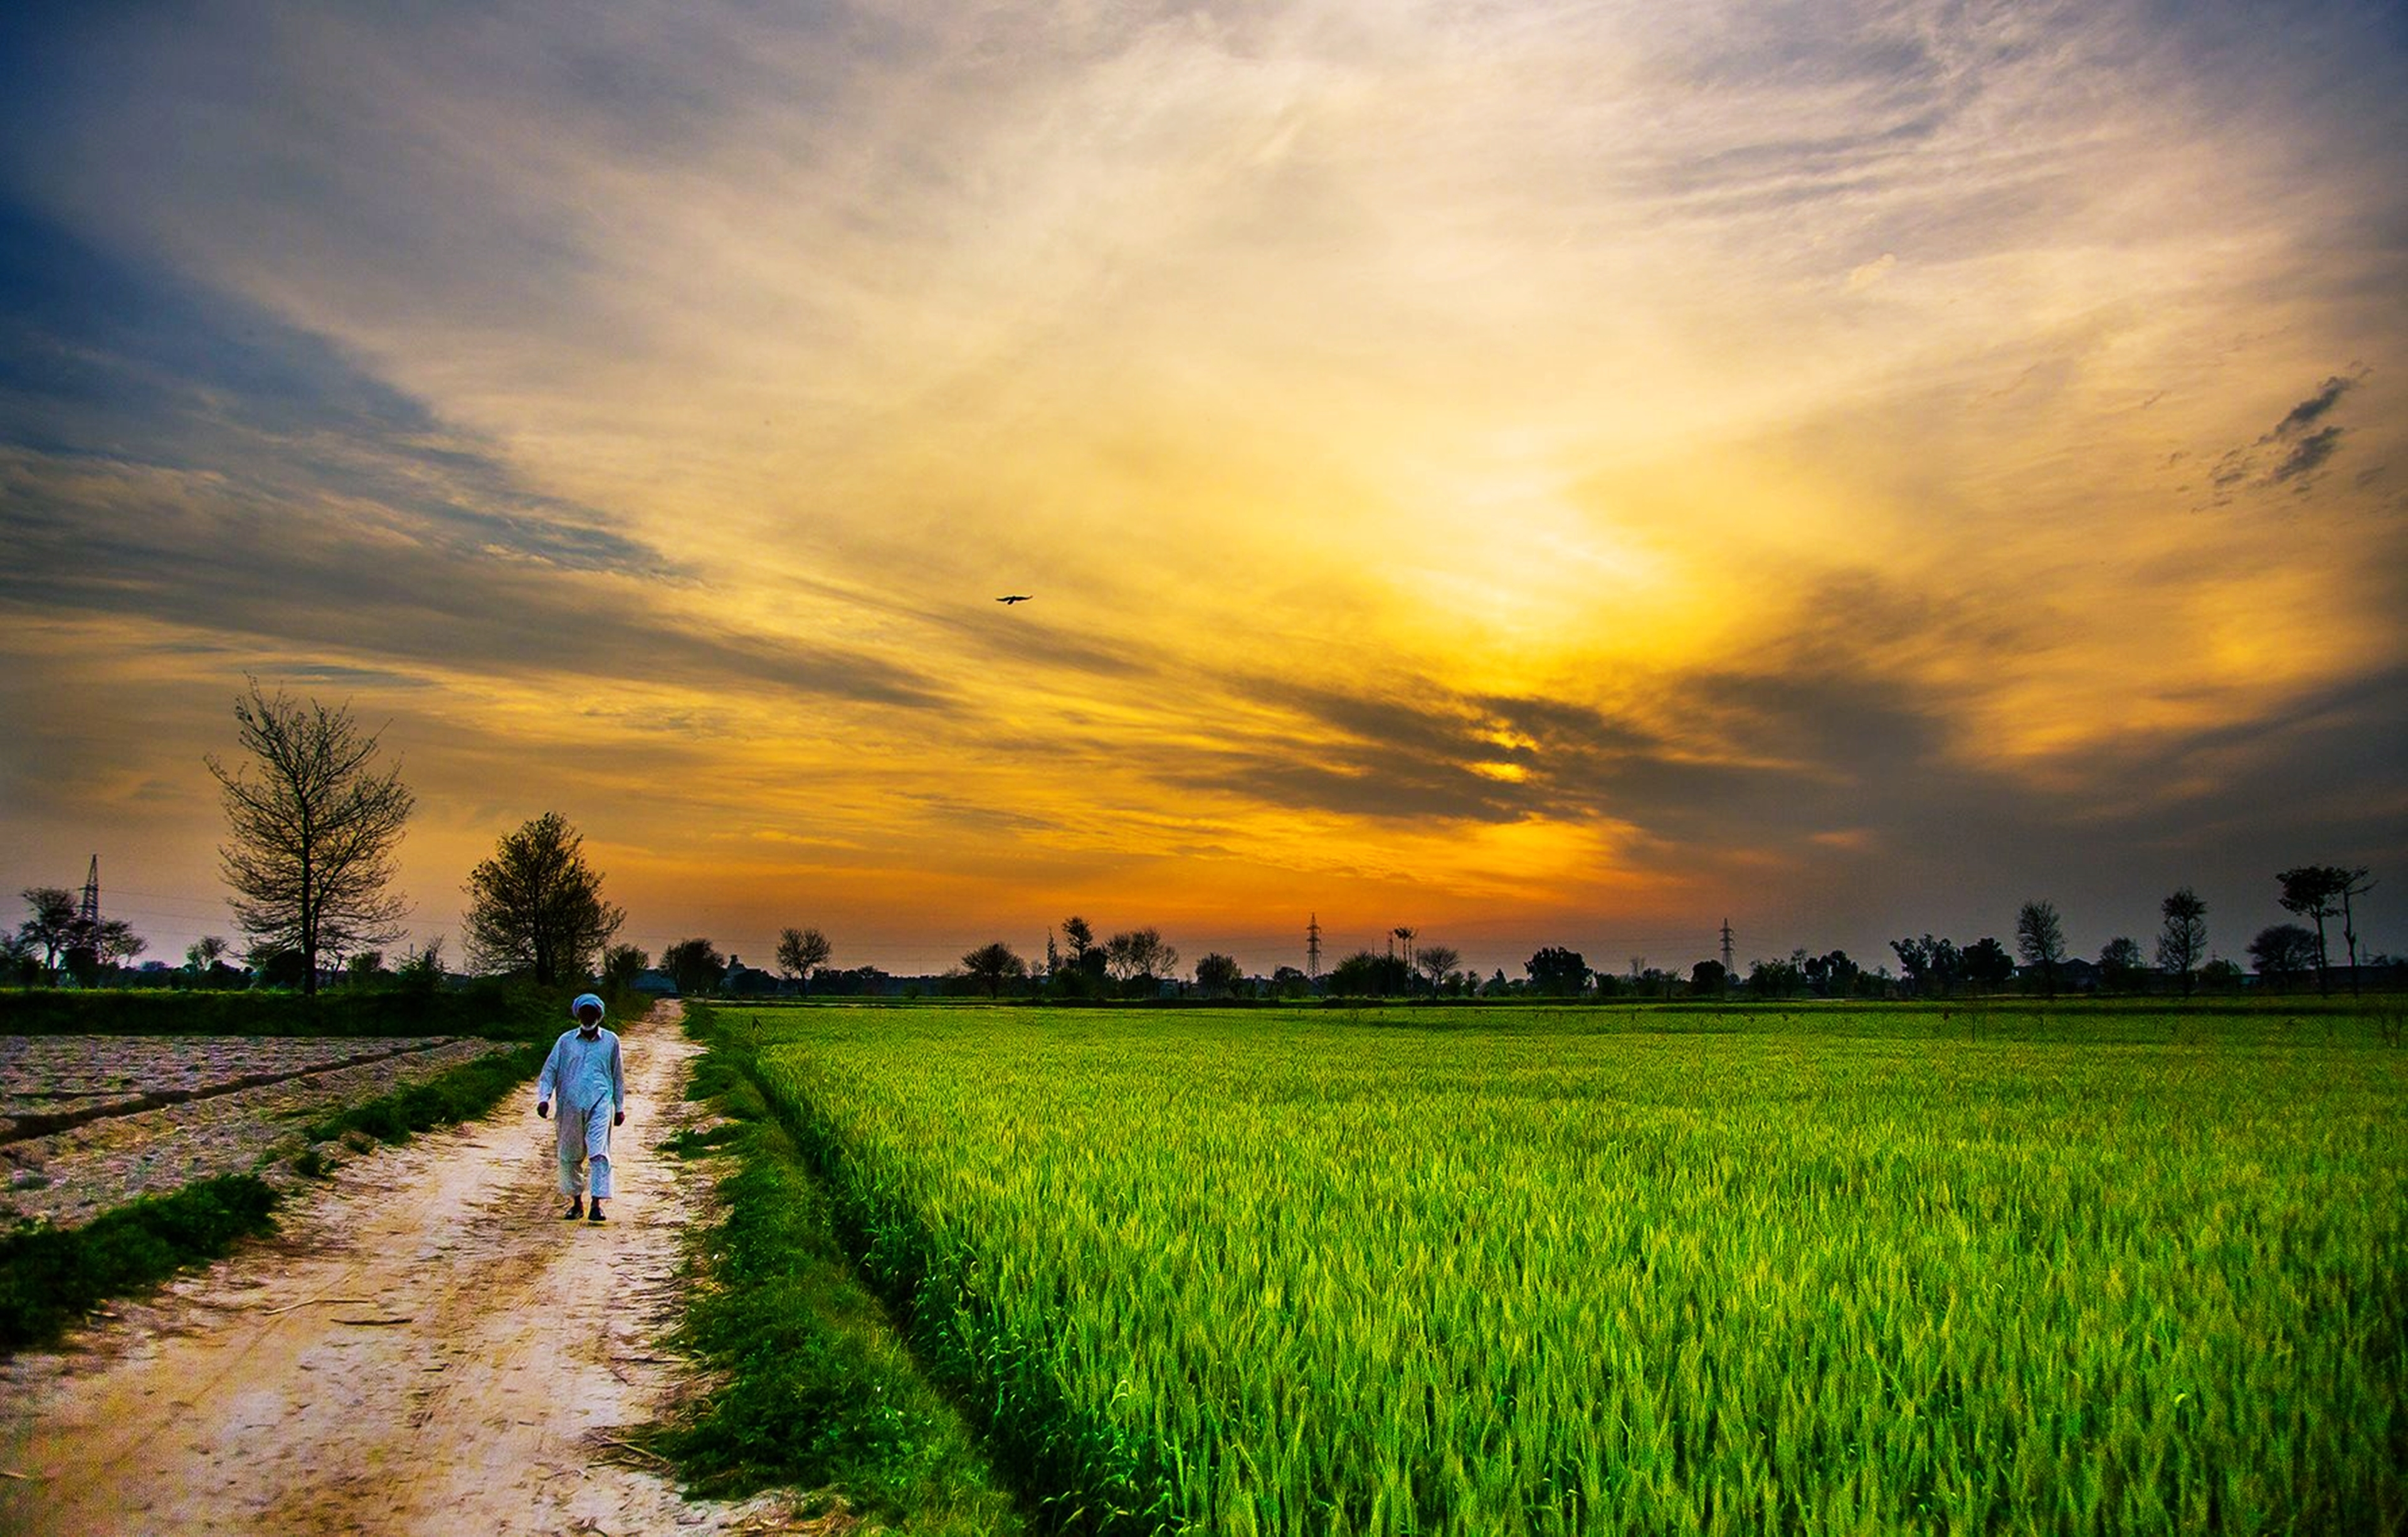 62 countryside hd wallpapers backgrounds wallpaper for Countryside wallpaper for walls